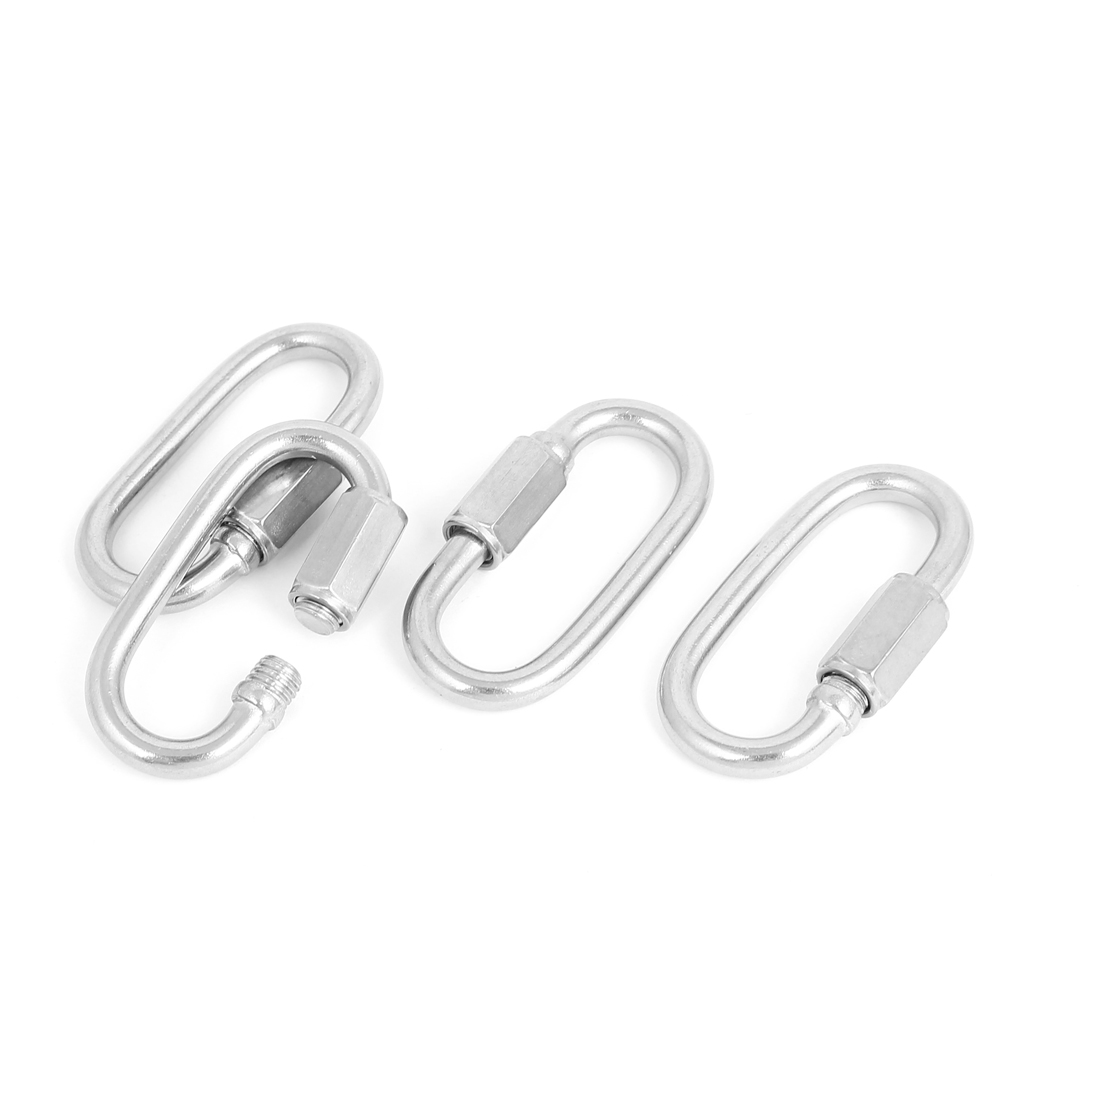 5mm Thickness Stainless Steel Quick Link Chain Rope Cable Connector 4 Pcs